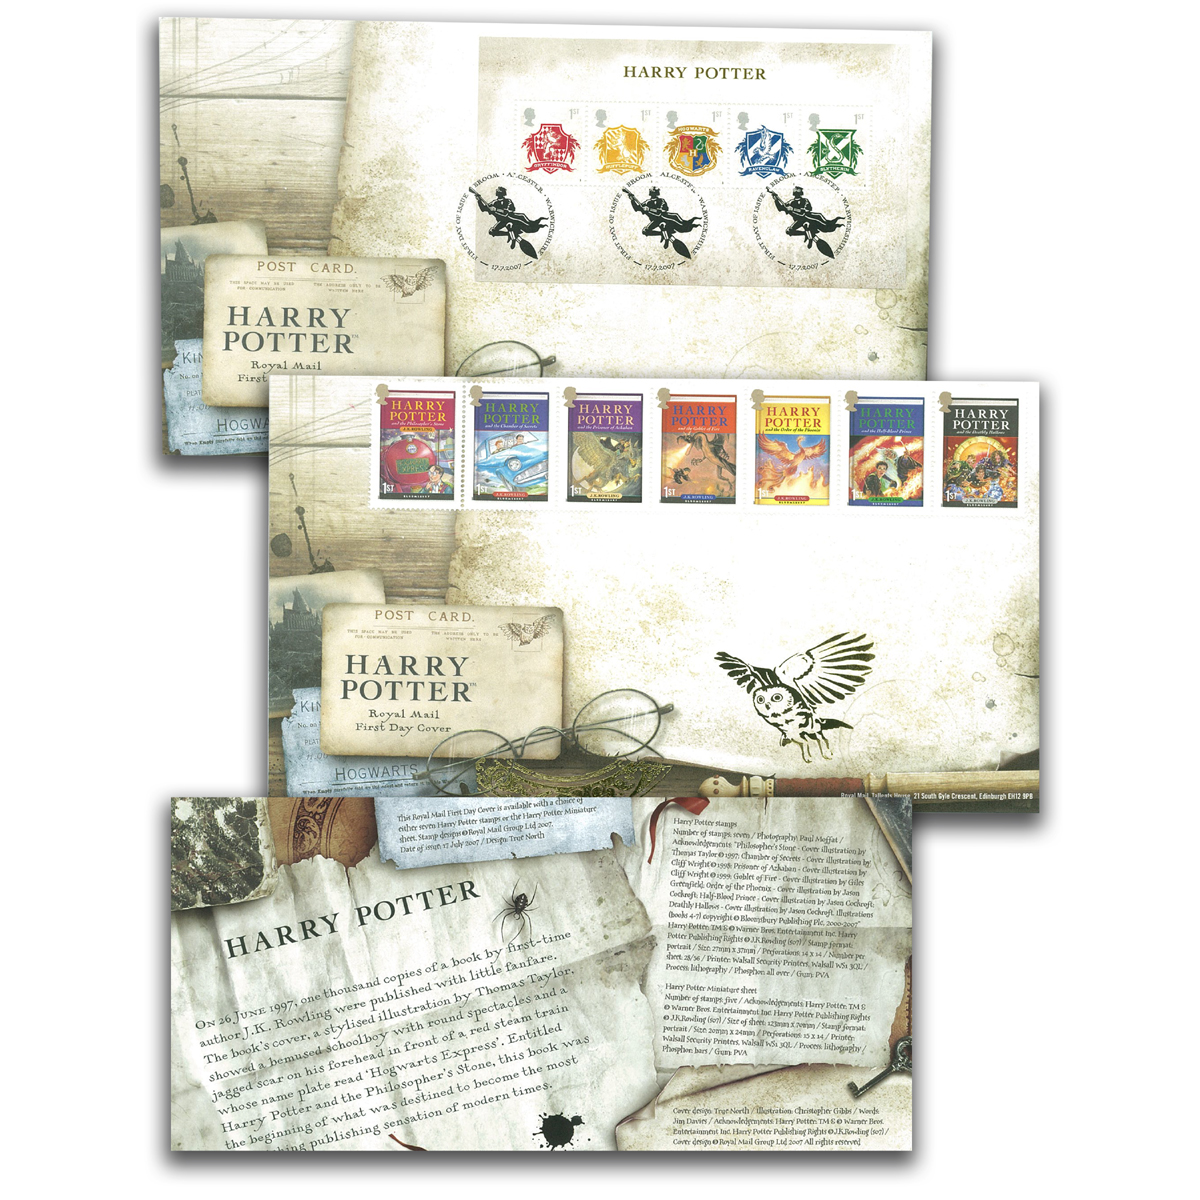 Harry Potter First Day Covers